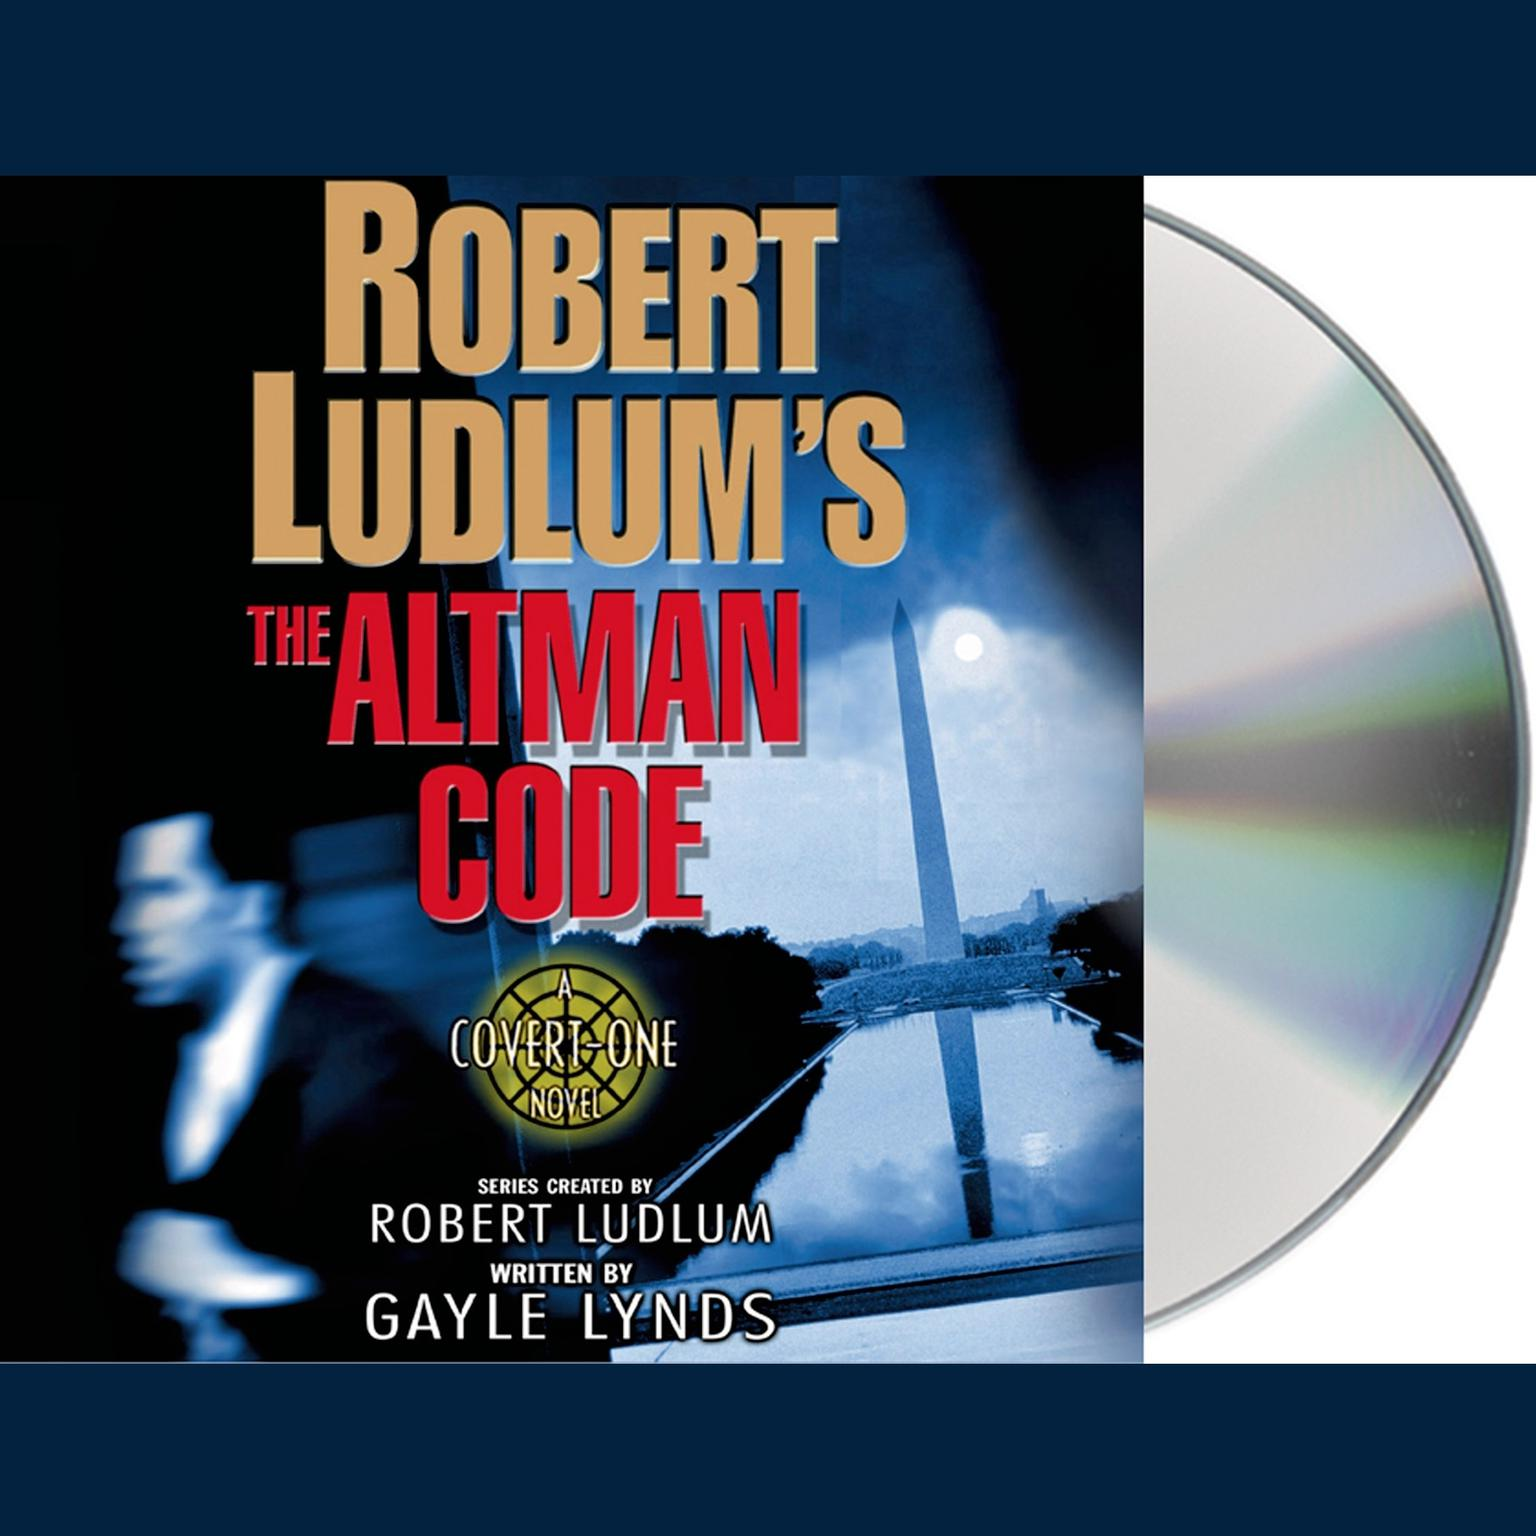 Printable Robert Ludlum's The Altman Code: A Covert-One Novel Audiobook Cover Art